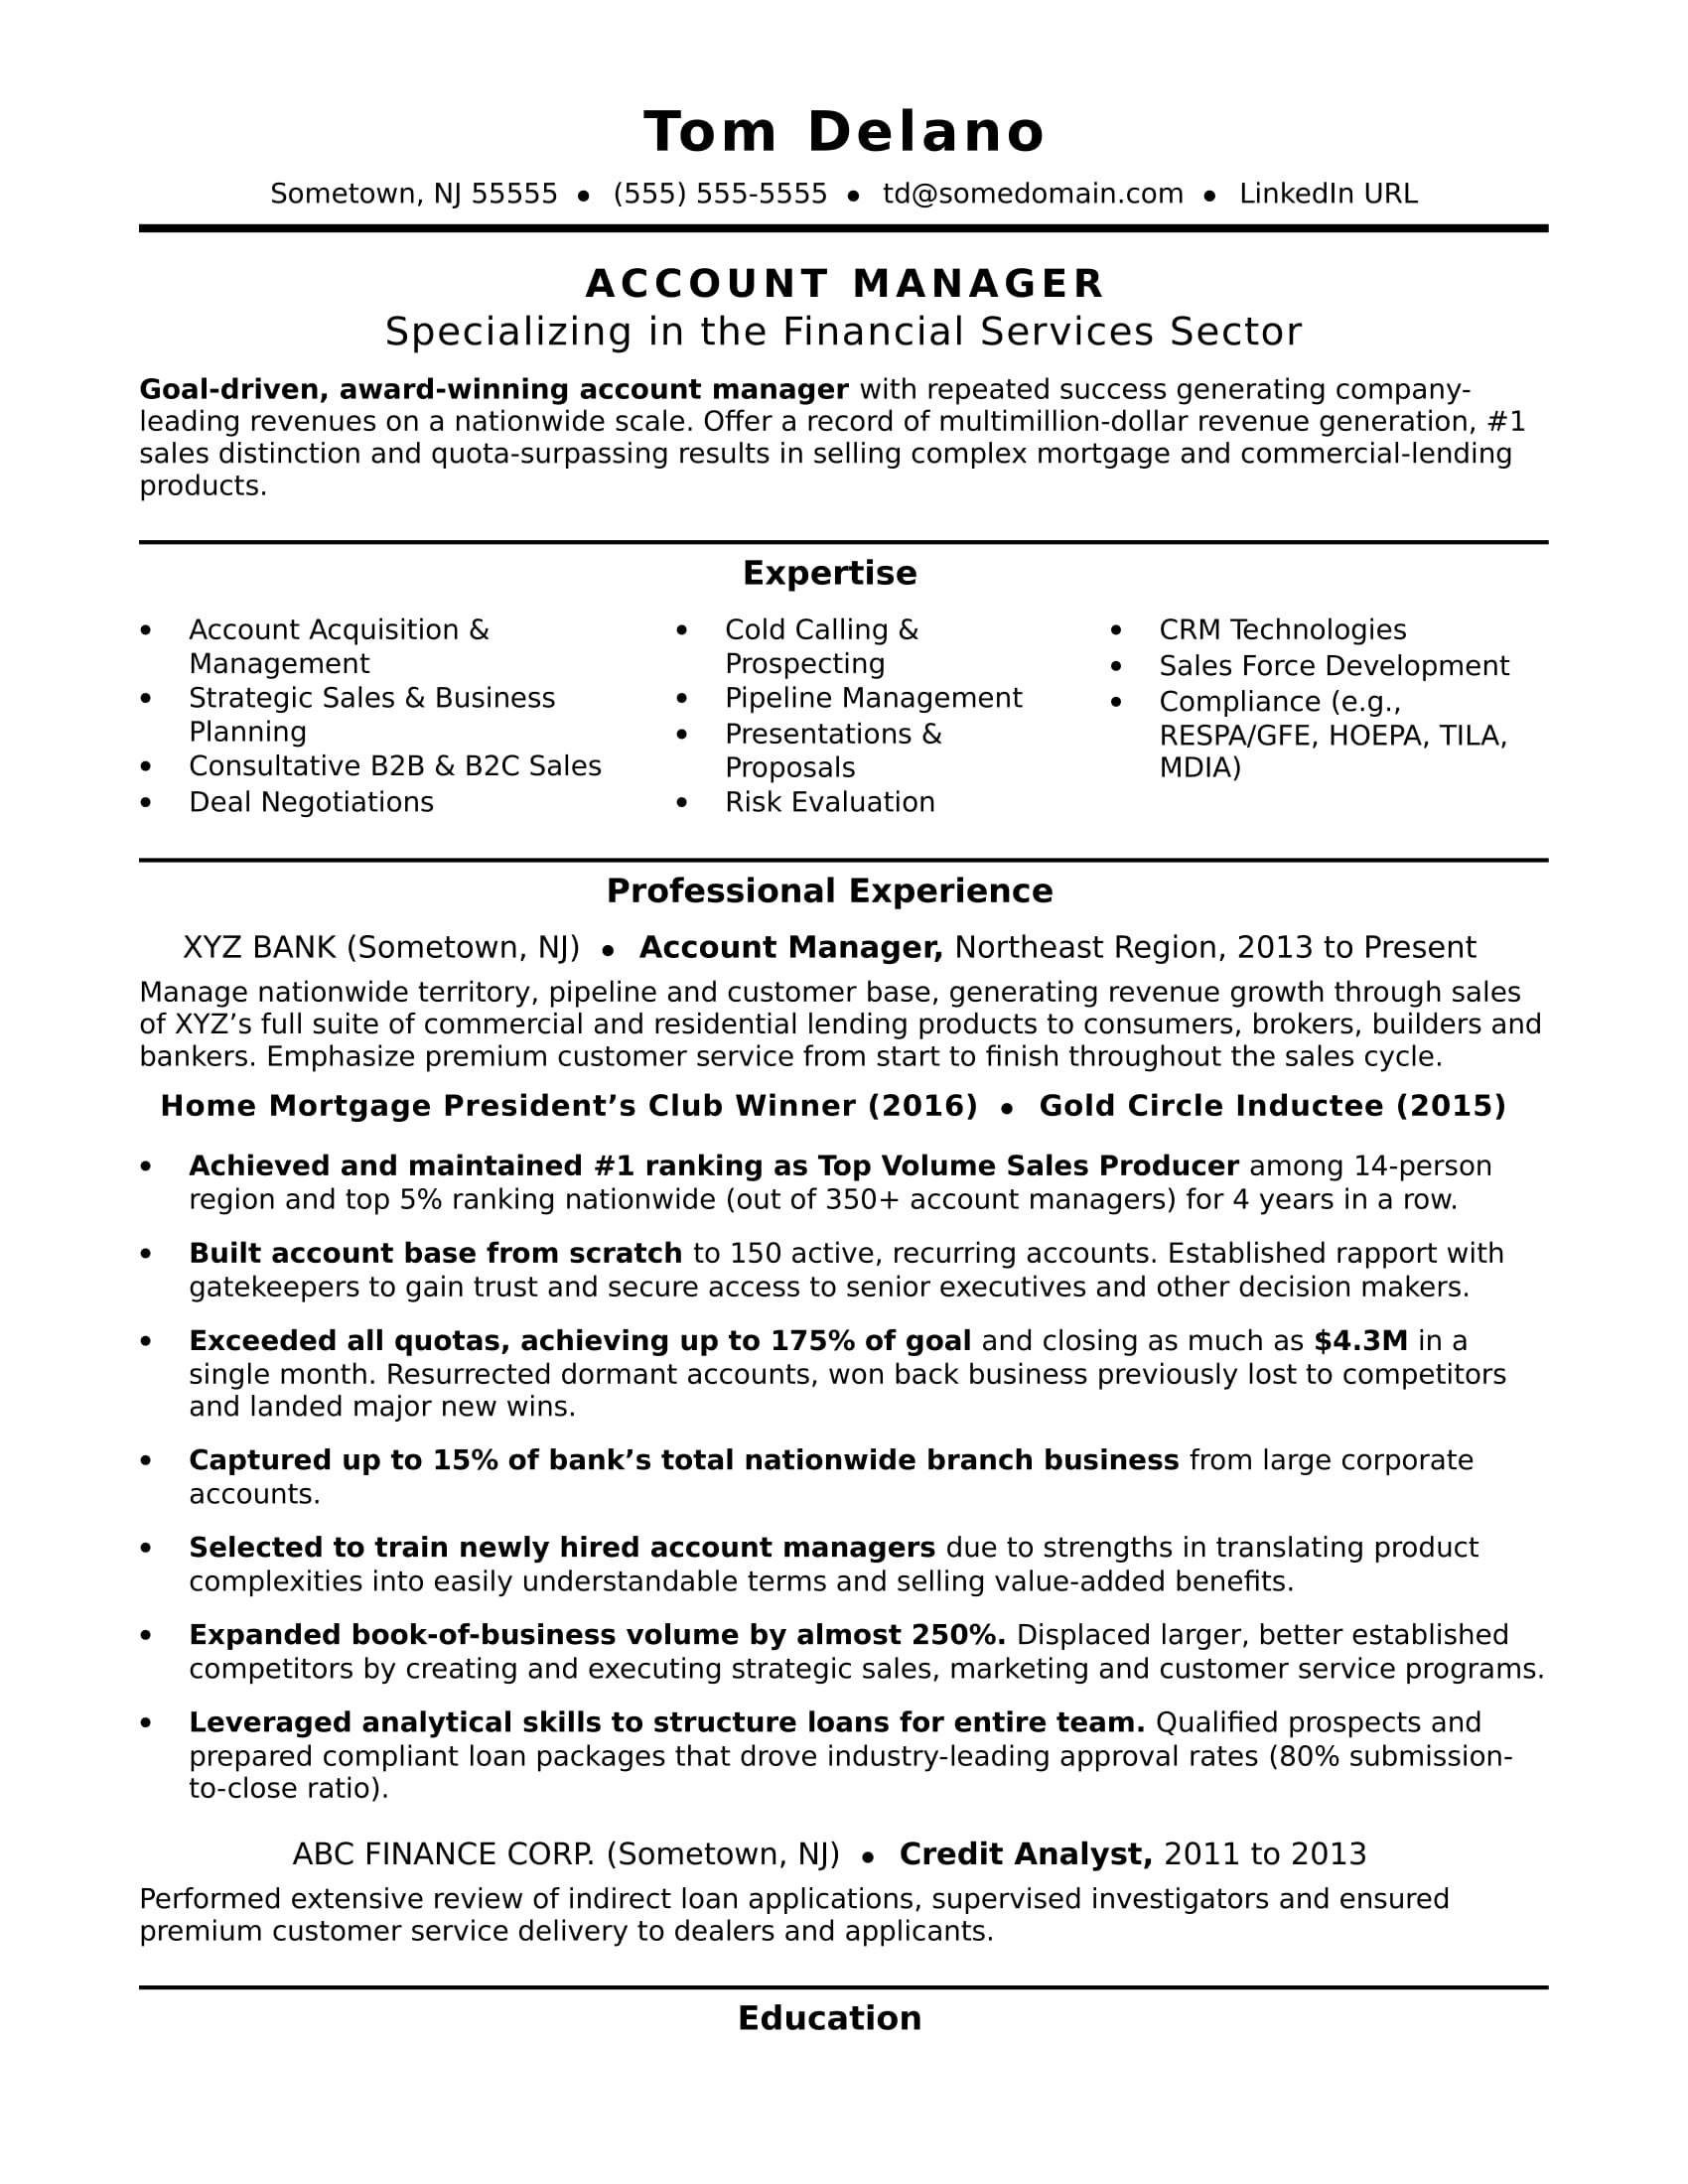 account manager resume sample monster customer success english teacher responsibilities Resume Customer Success Resume